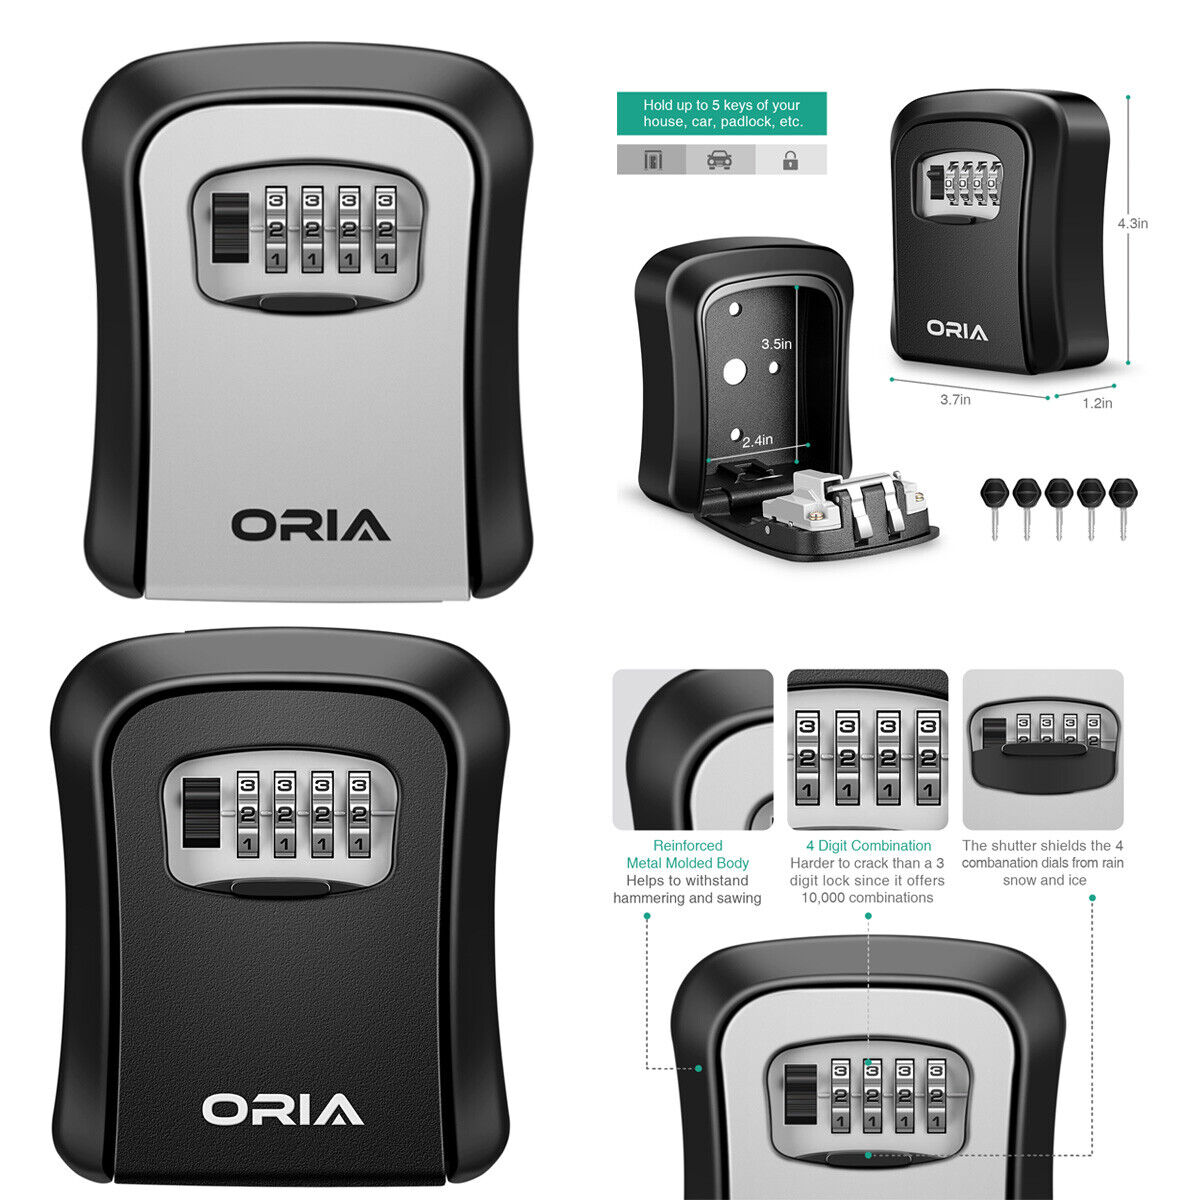 Details about 1x ORIA 4-Digit Combination Key Lock Storage Box Wall Mounted  Safe Security Home